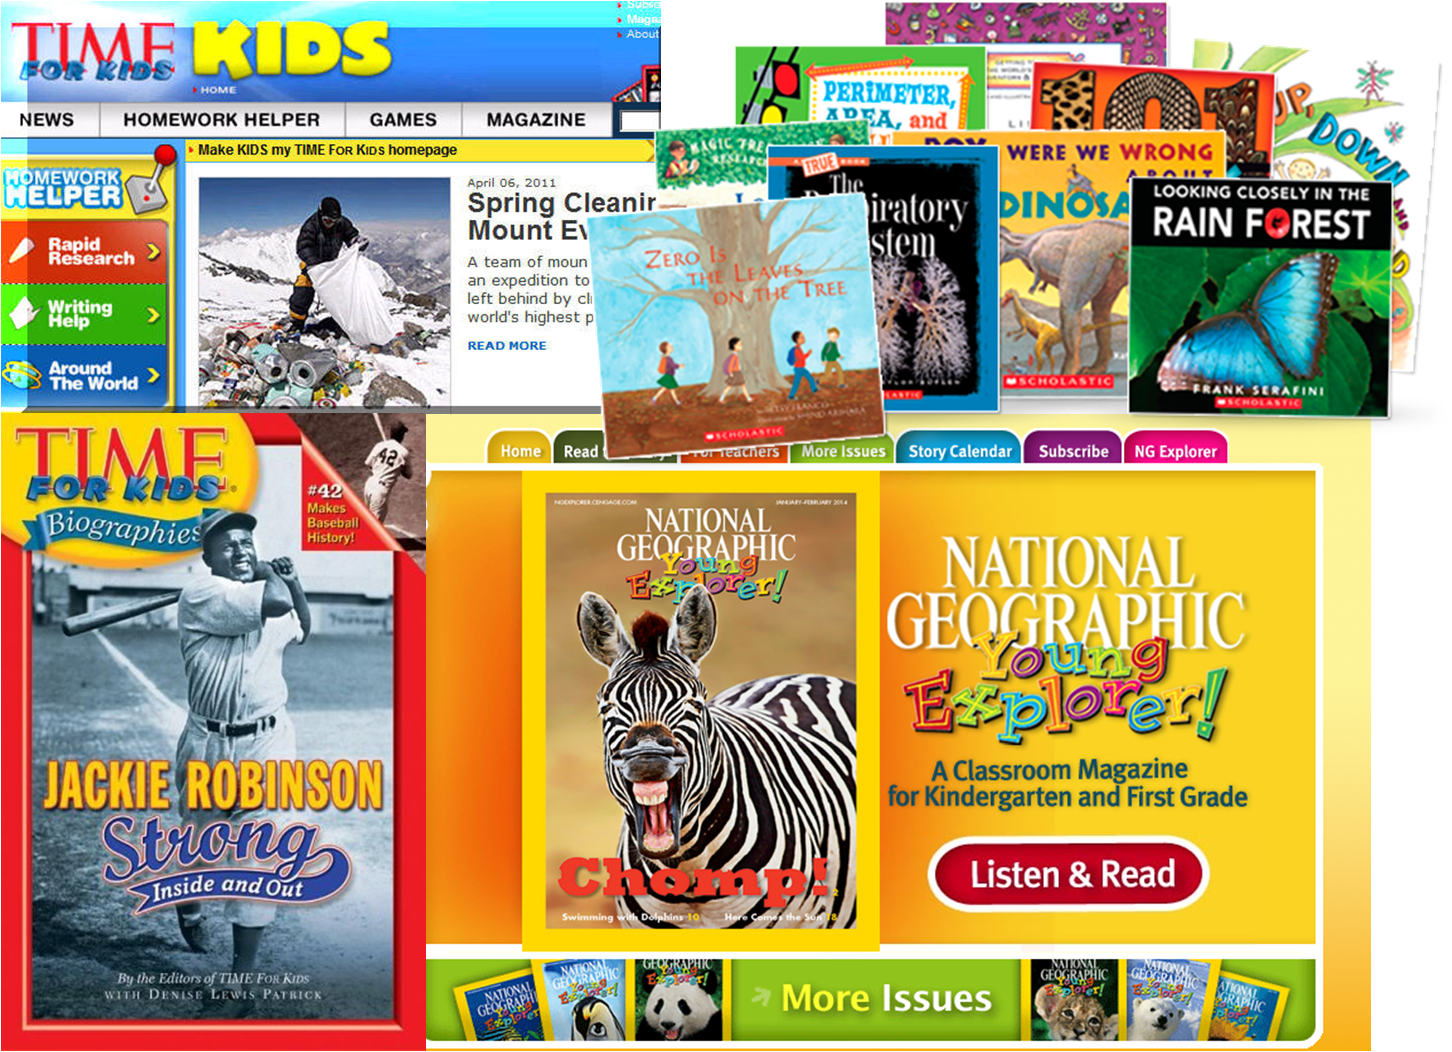 adventures in literacy land informational text the 3 2 1 strategy can be used informational books magazine articles biographies even websites here are a few of our favorite books and websites we